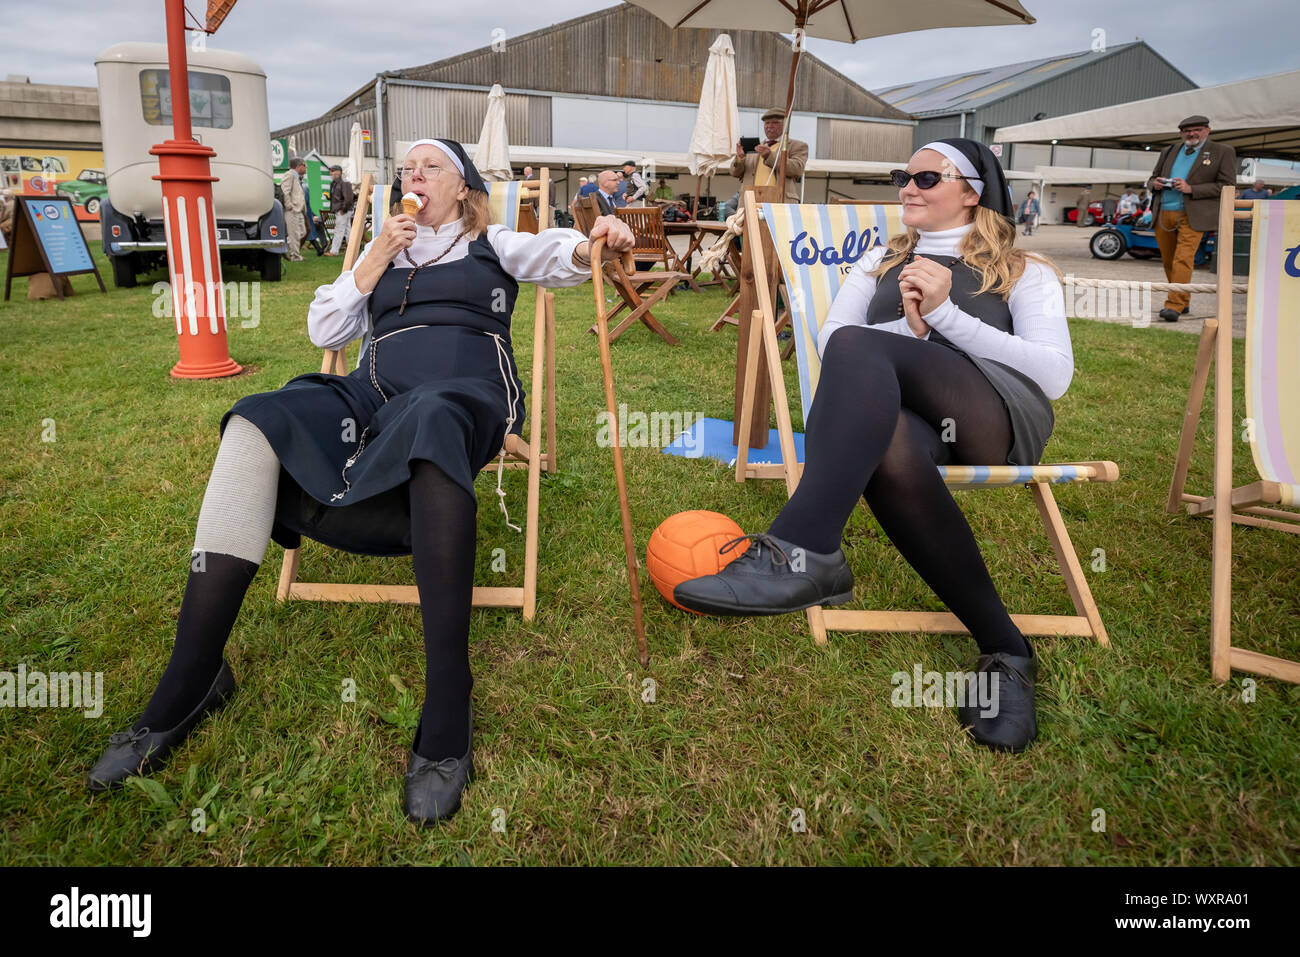 Vintage-themed Goodwood Revival. Britain's greatest annual classic car show celebrates the mid-20th-century heyday of the Goodwood racing circuit. Stock Photo